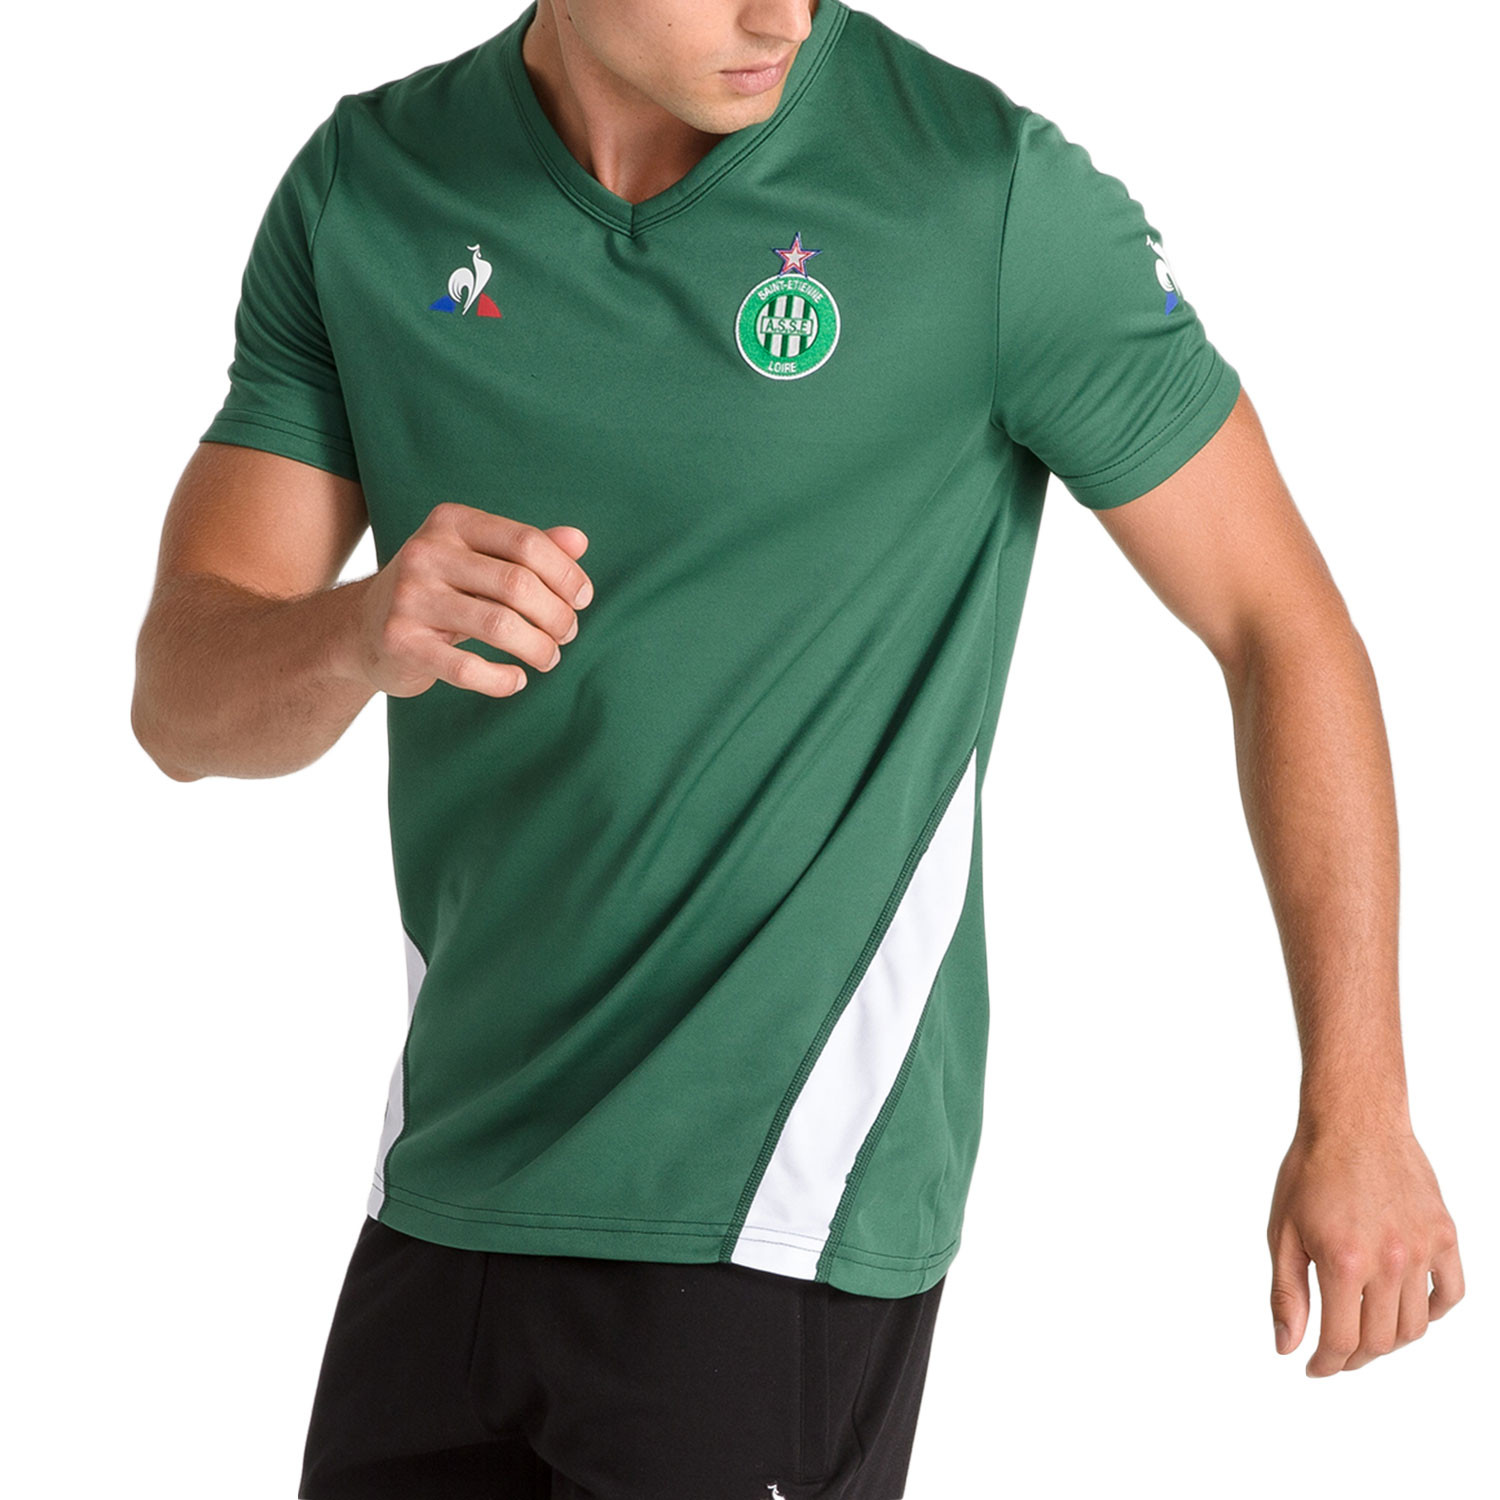 Asse Training Maillot Mc Homme